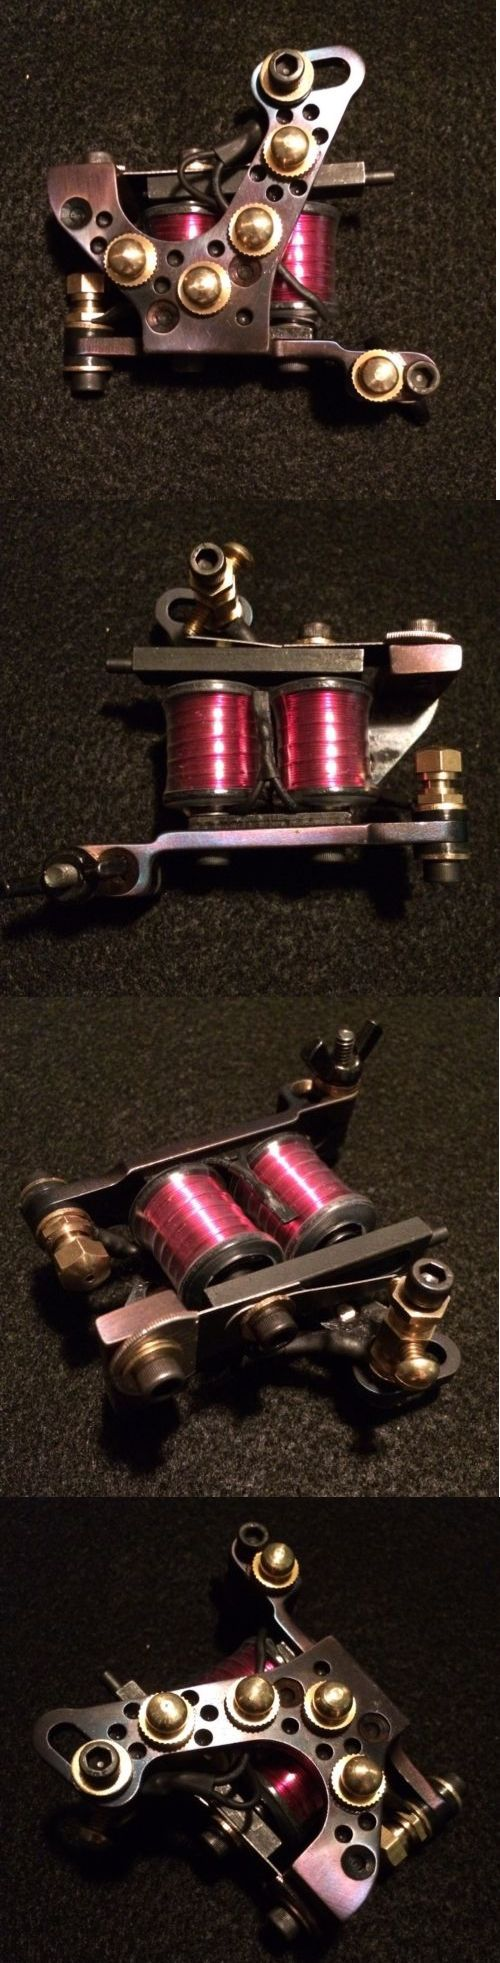 Tattoo Machines and Parts: Tattoo Machine Custom Liner Heat Treated Steel Usa 8-32 Pink Hand Wound Coils -> BUY IT NOW ONLY: $99.99 on eBay!